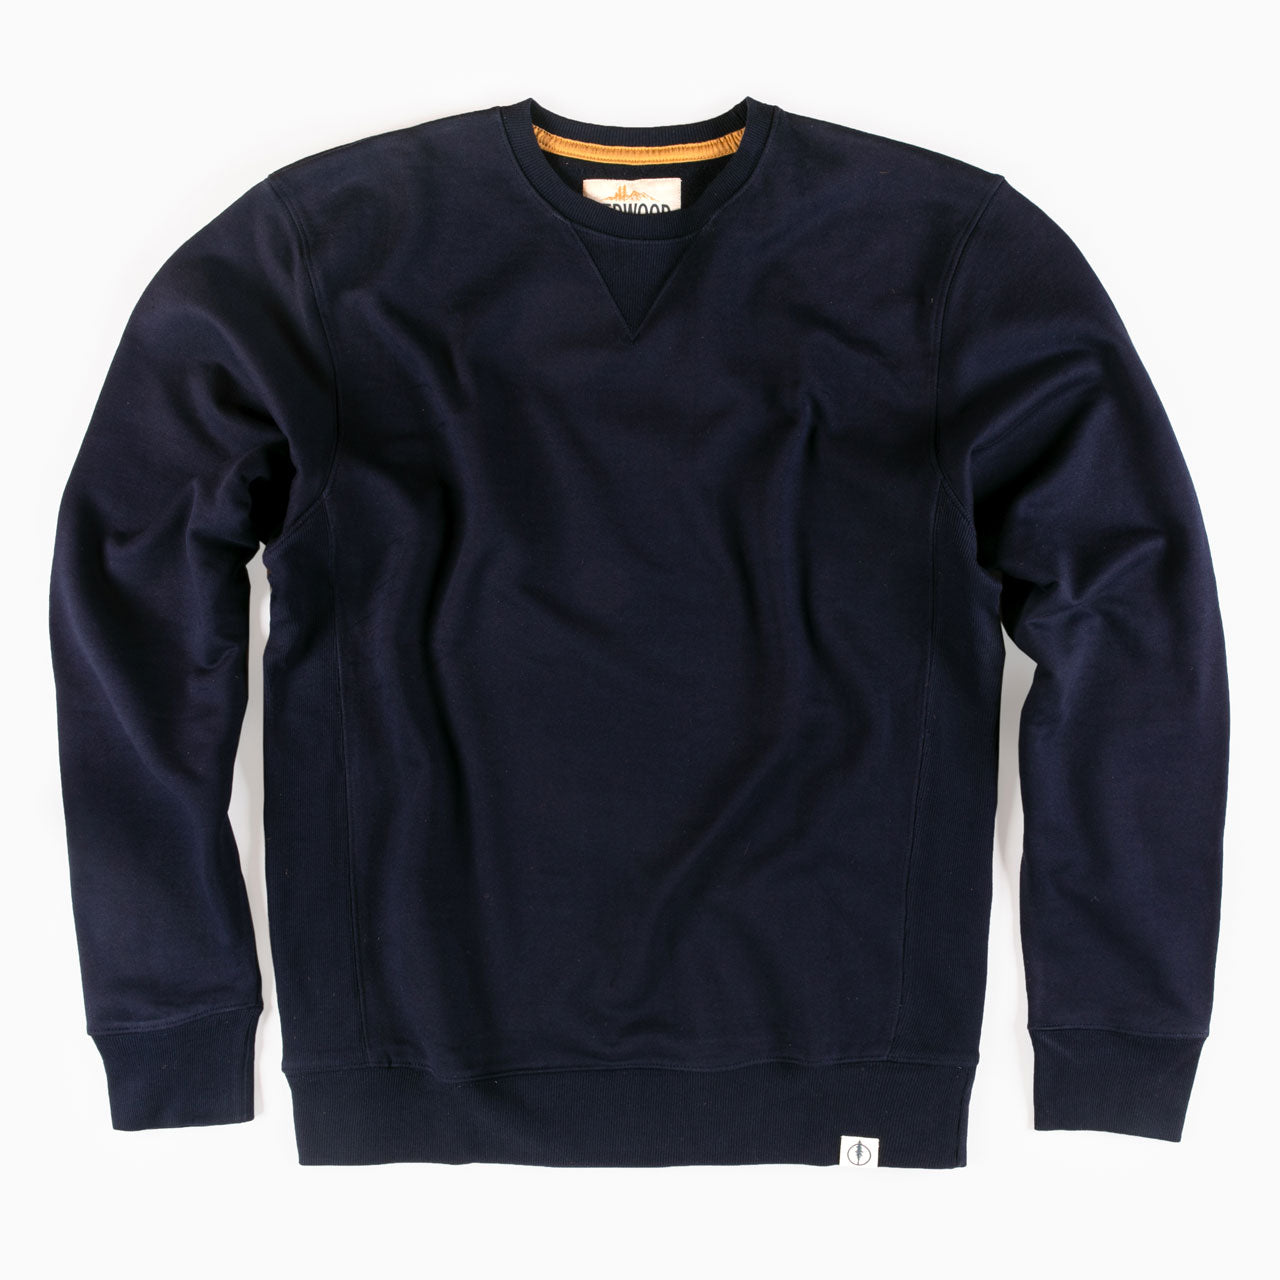 Crew Neck Tall Sweatshirt (Also Available in Extra Tall)